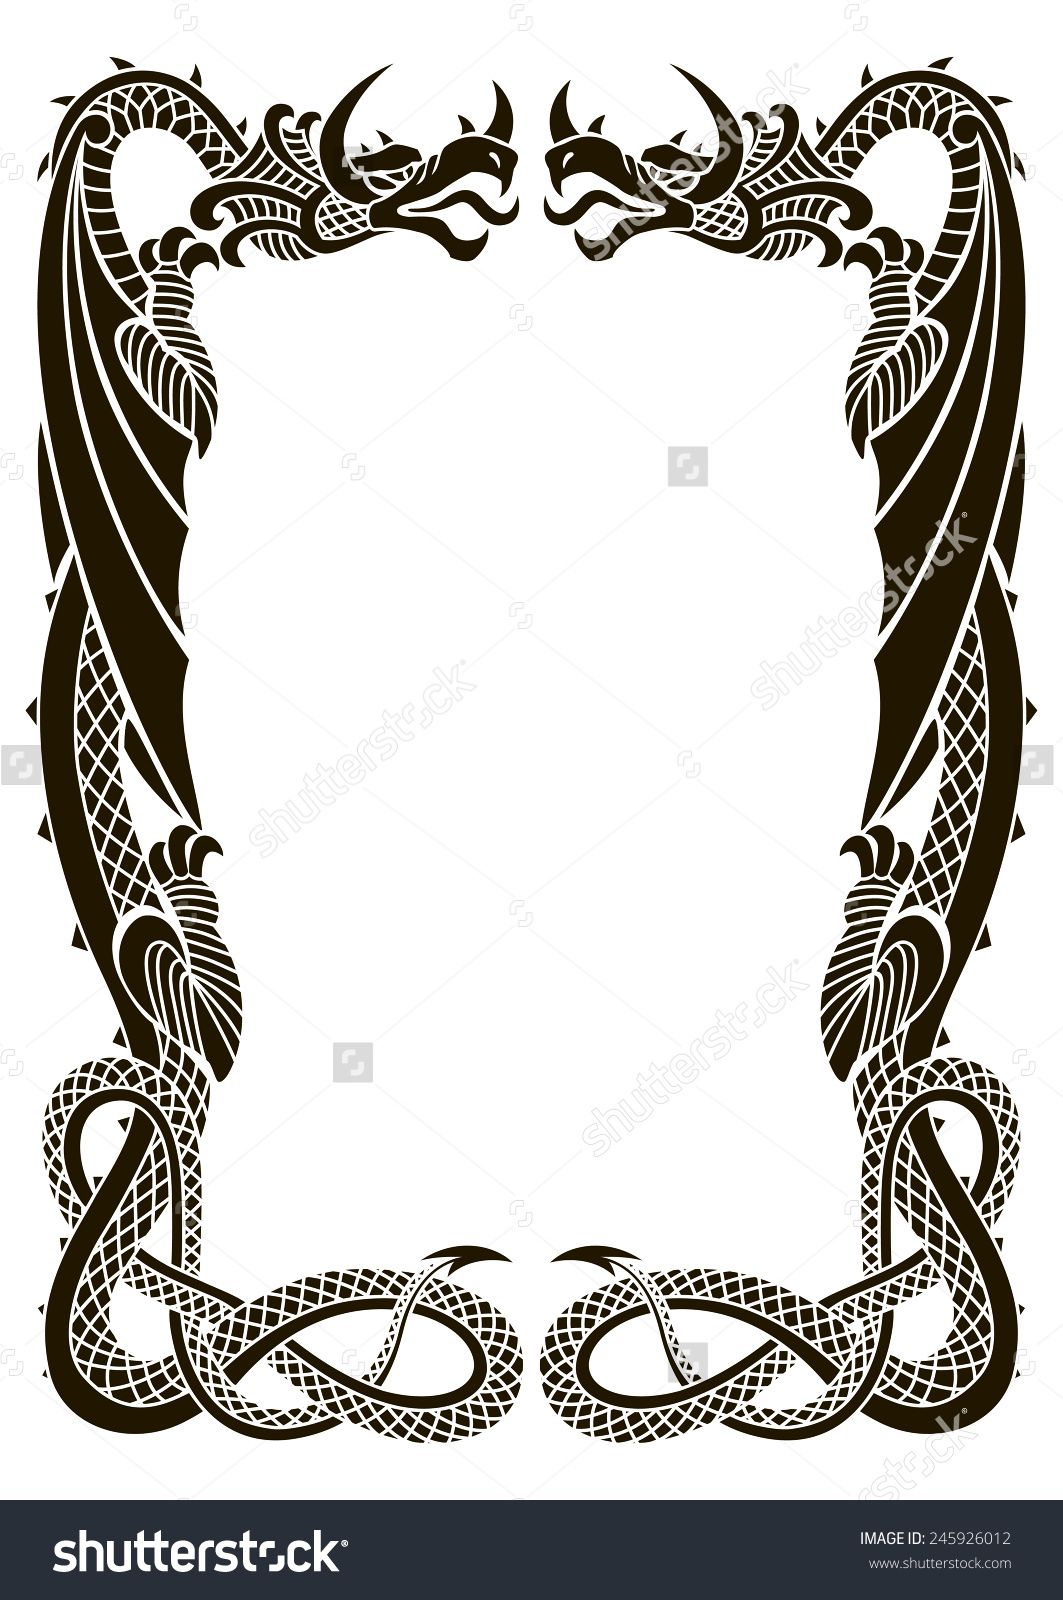 Dragons frame ornament isolated on white background in the ...